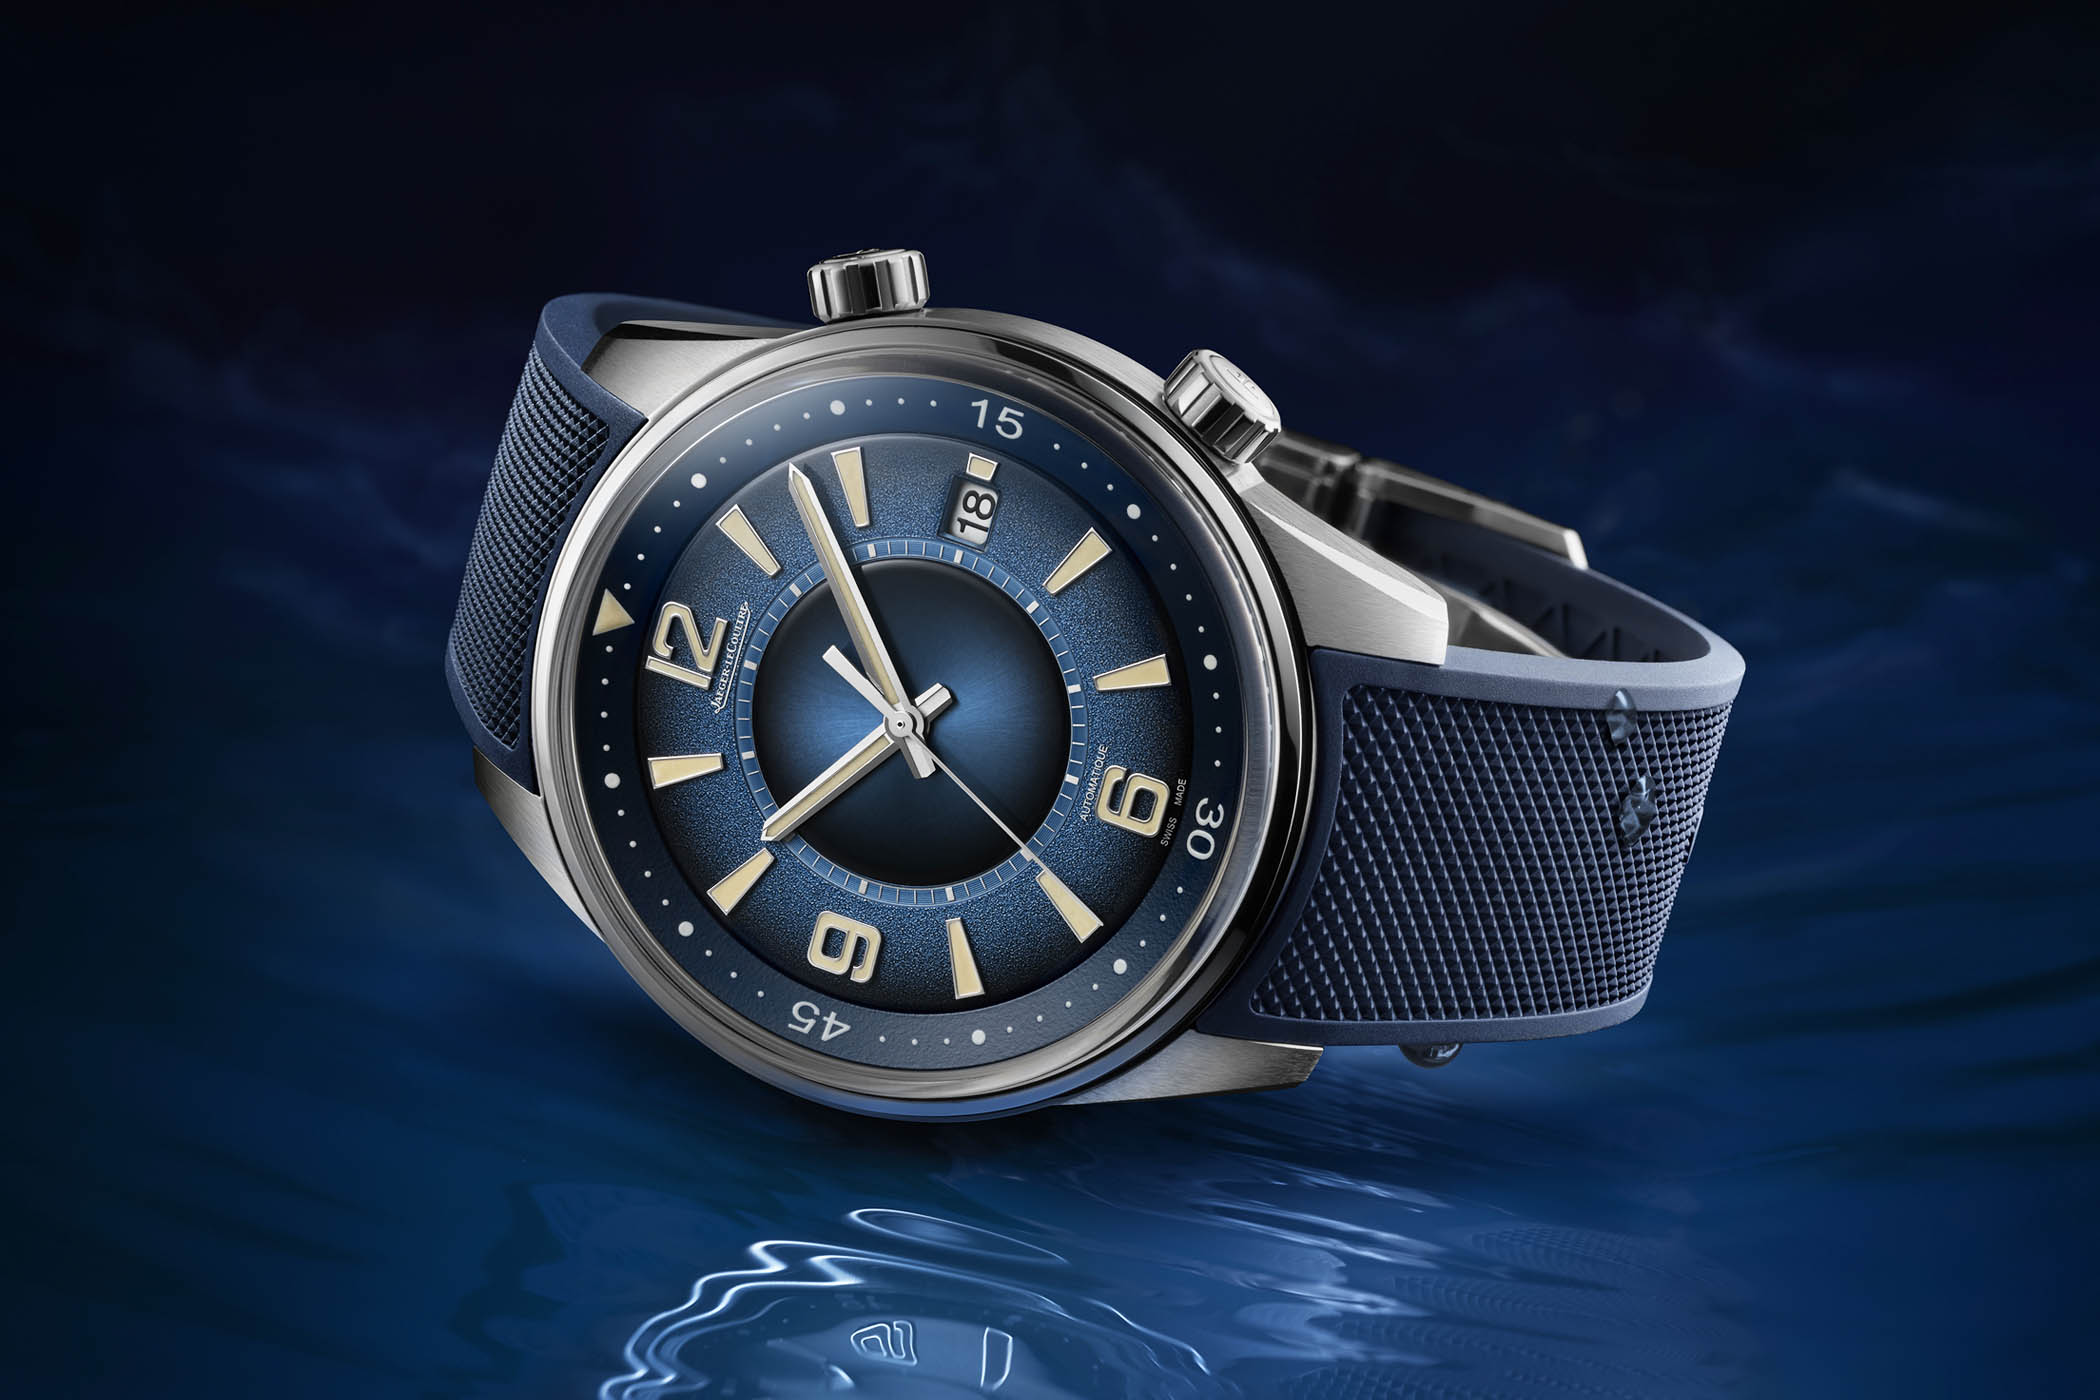 Jaeger-LeCoultre Polaris Date Limited Edition Gradient Blue - Q9068681